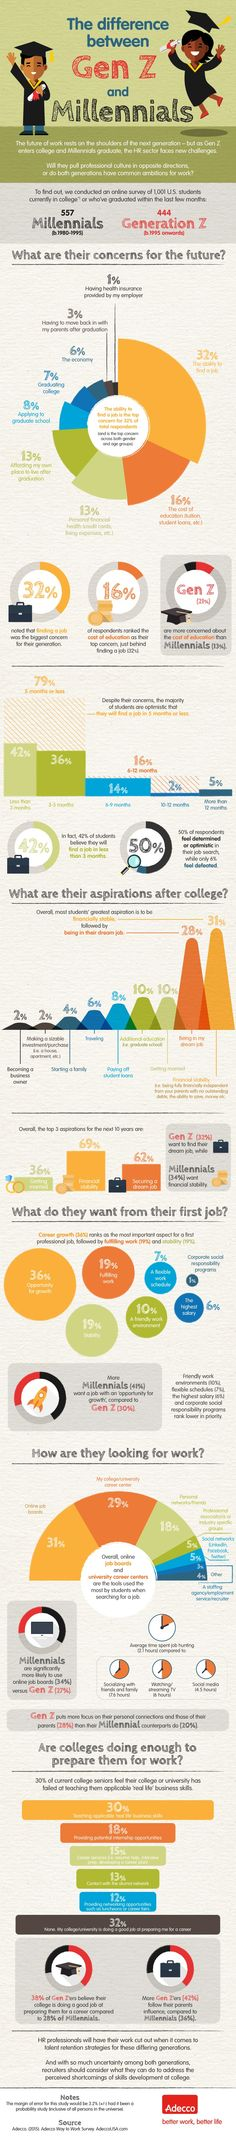 Forget Millennials. Is Your Workplace Ready for Generation Z? | Inc.com